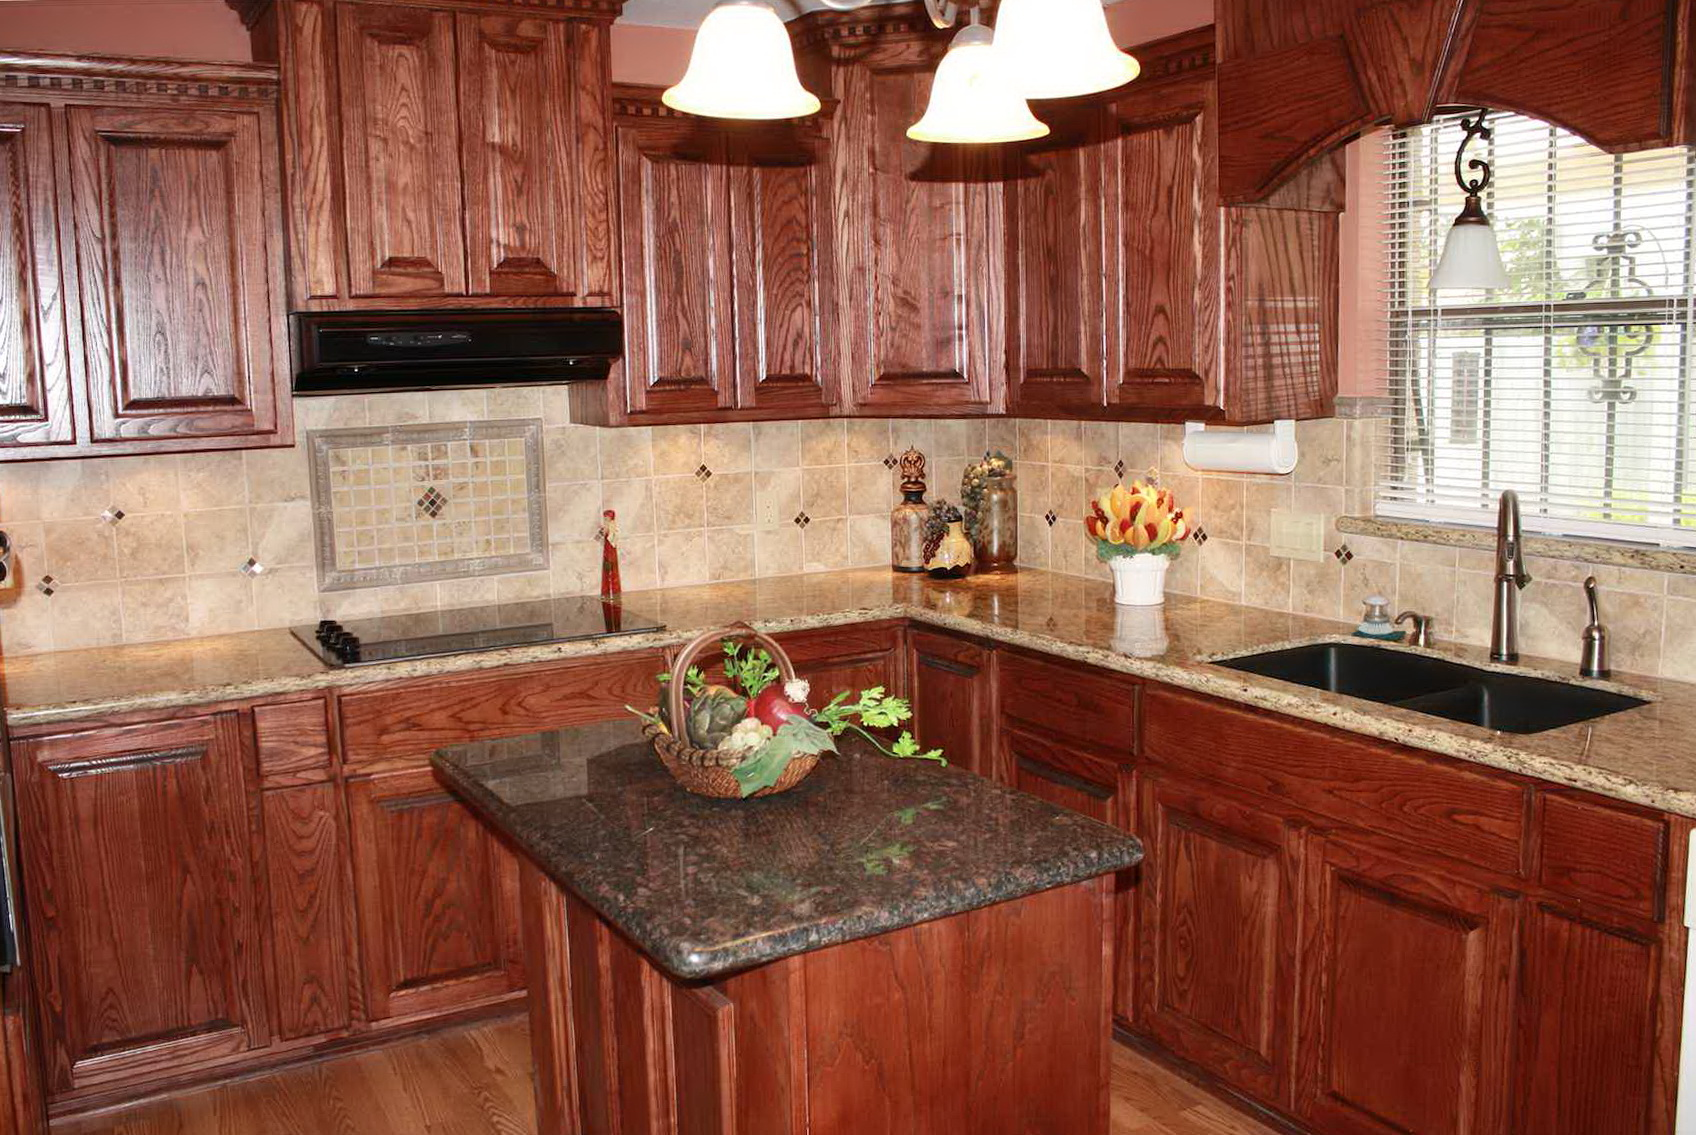 Kitchen Renovation Costs Nj